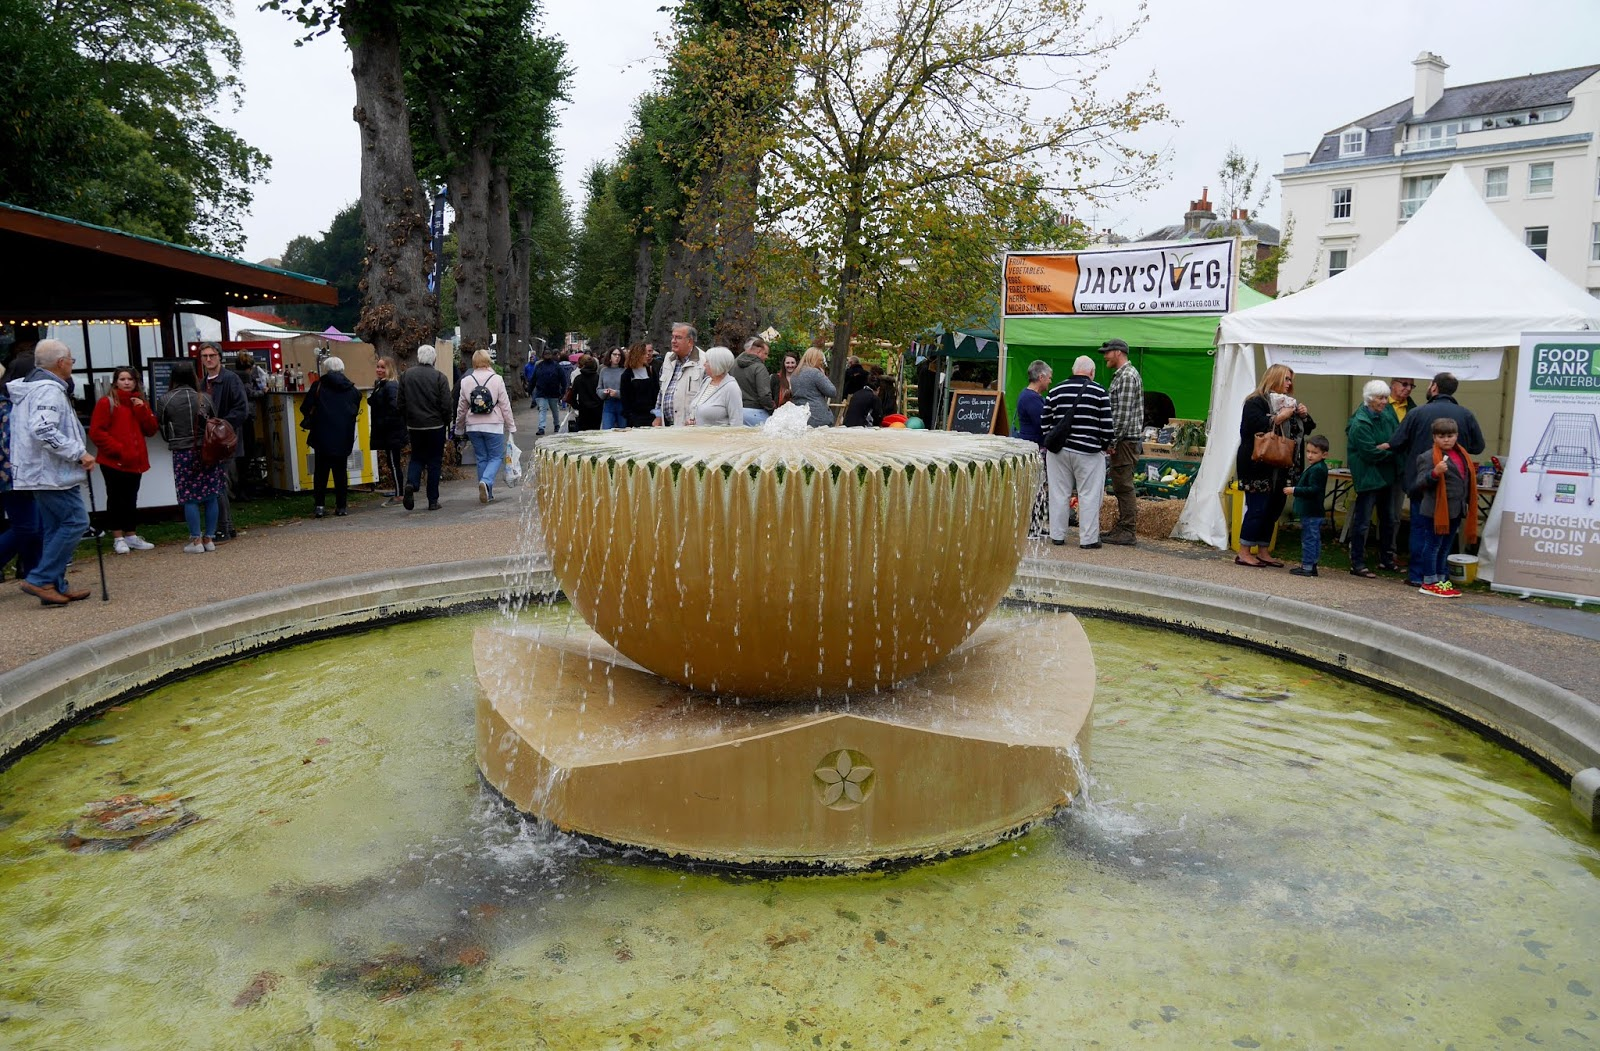 The foutain in Dane John Gardens during the Canterbury Food Festival